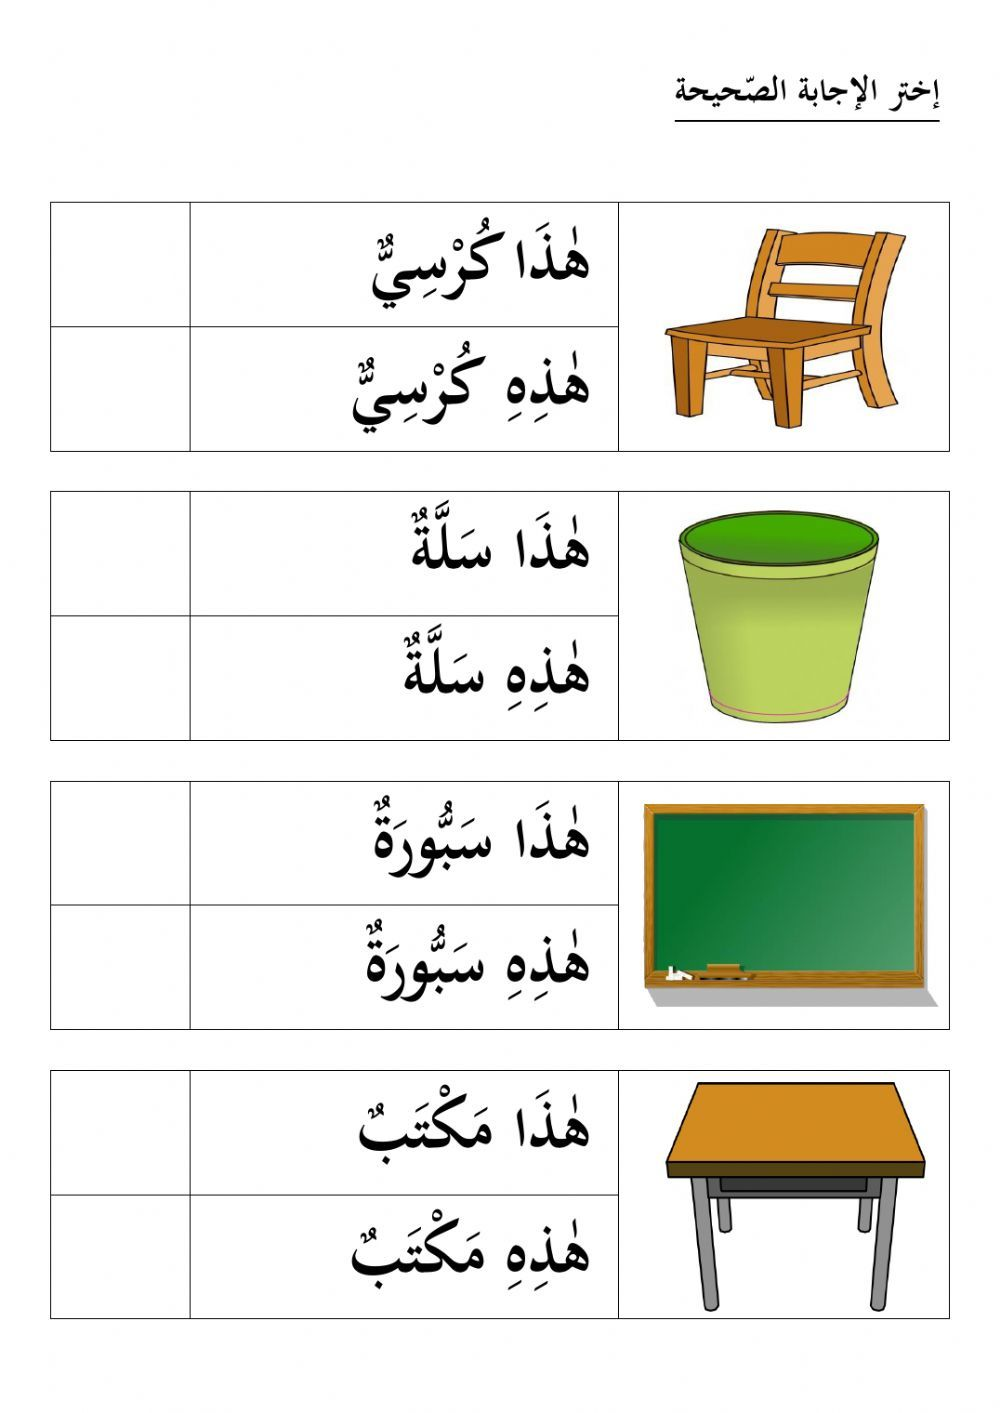 Kata Tunjuk Interactive And Downloadable Worksheet You Can Do The Exercises Online Or Download The Worksh Arabic Alphabet For Kids Arabic Kids Learning Arabic [ 1413 x 1000 Pixel ]